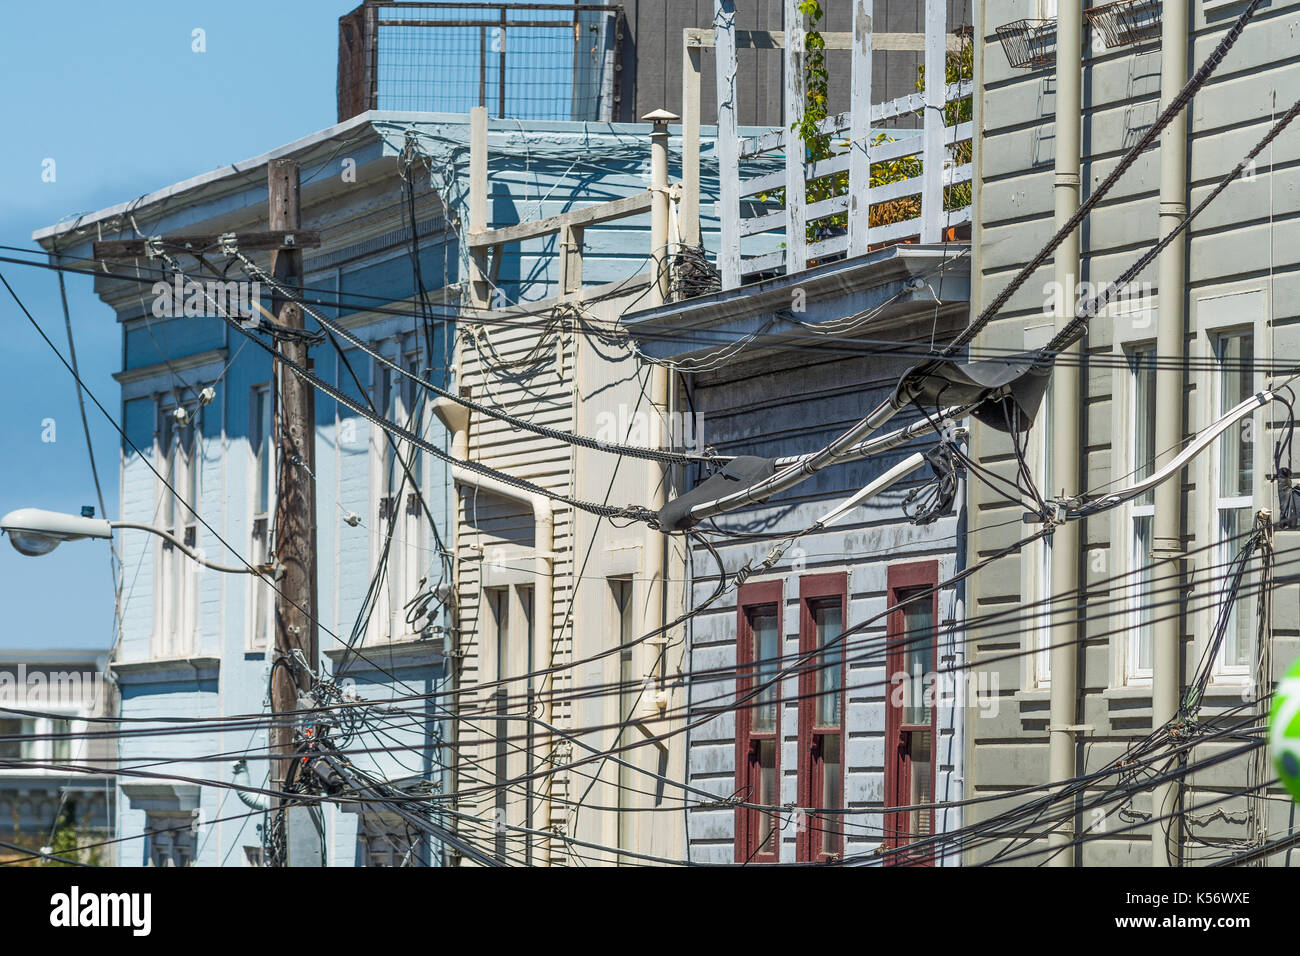 old facades with cables in San Francisco - Stock Image